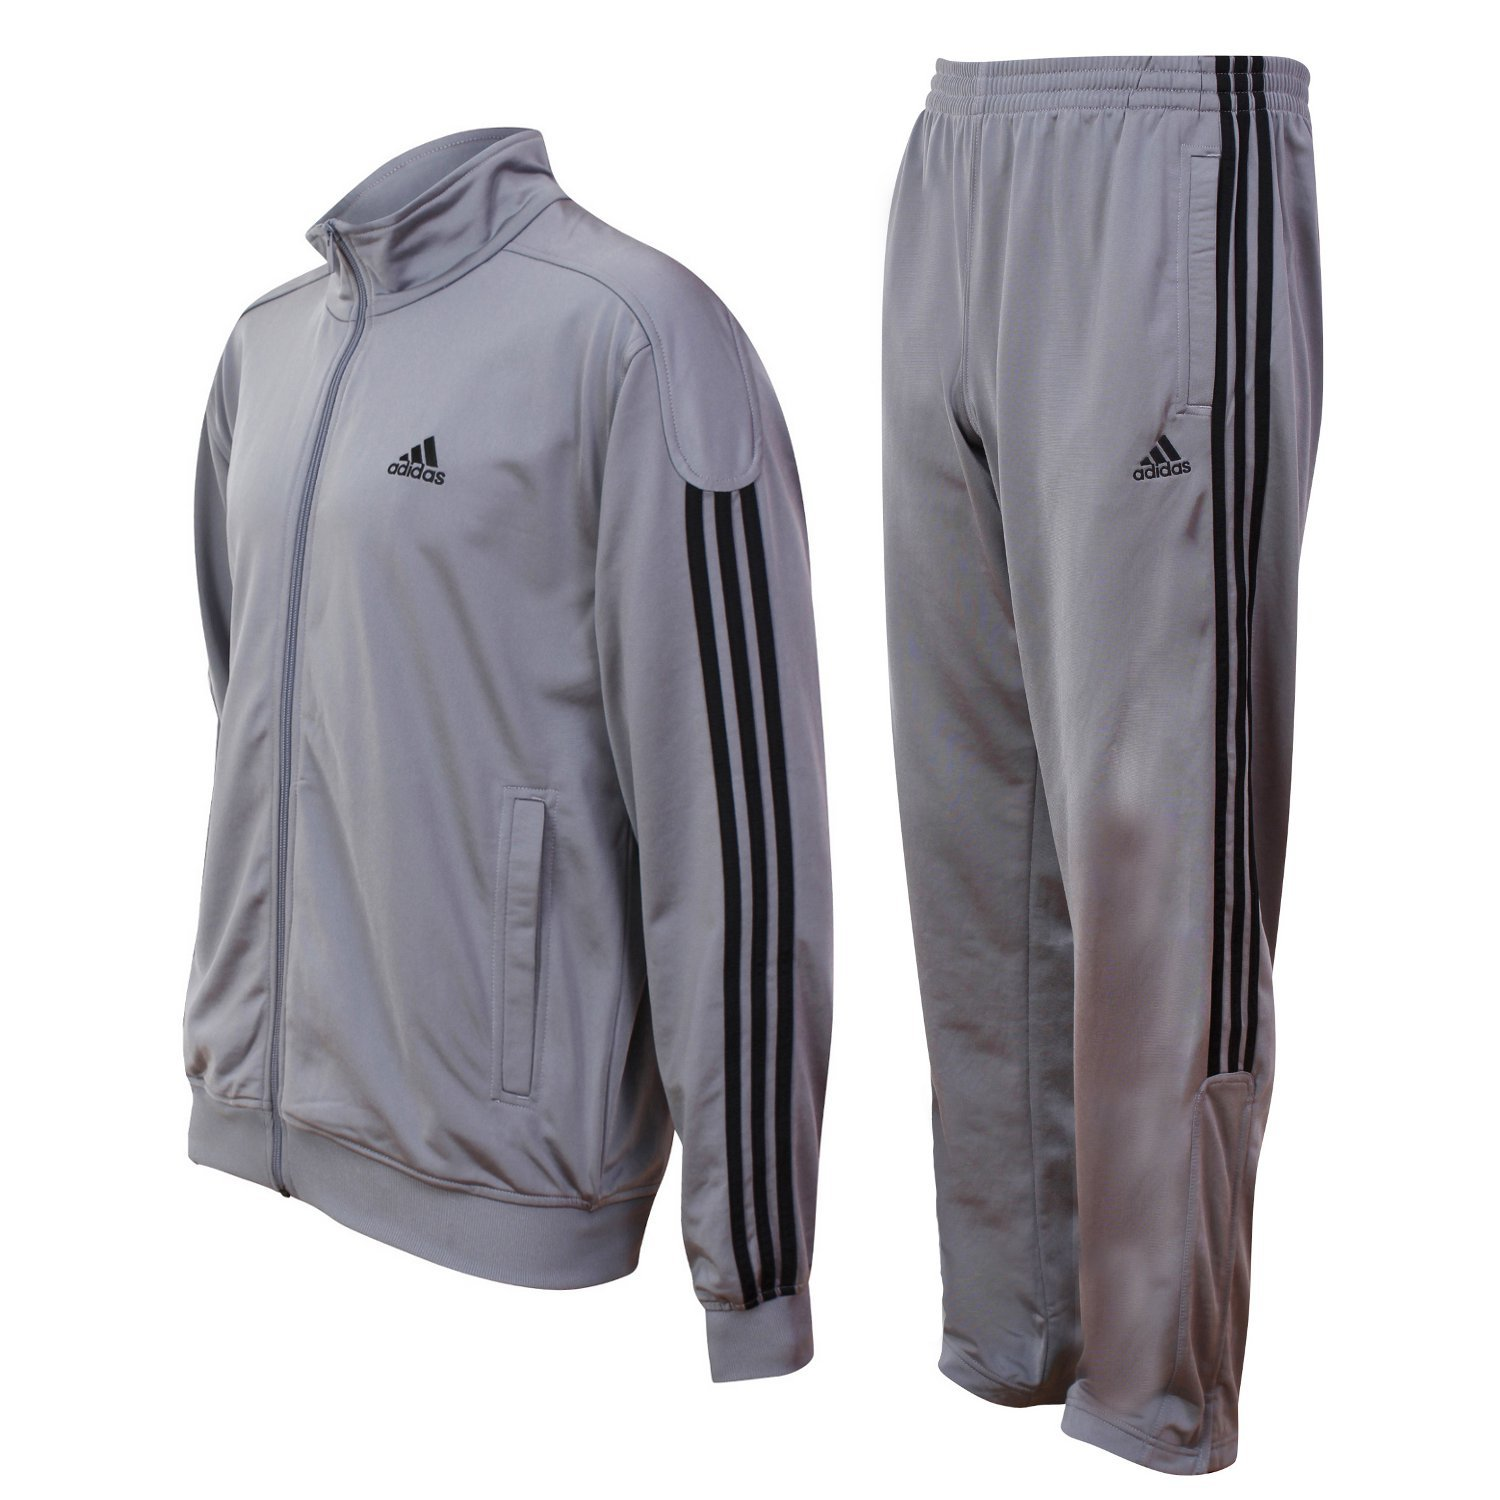 Buy >A Cheap Adidas Nero Tracksuit >A Buy Off49% Discountdiscounts 7a89bb